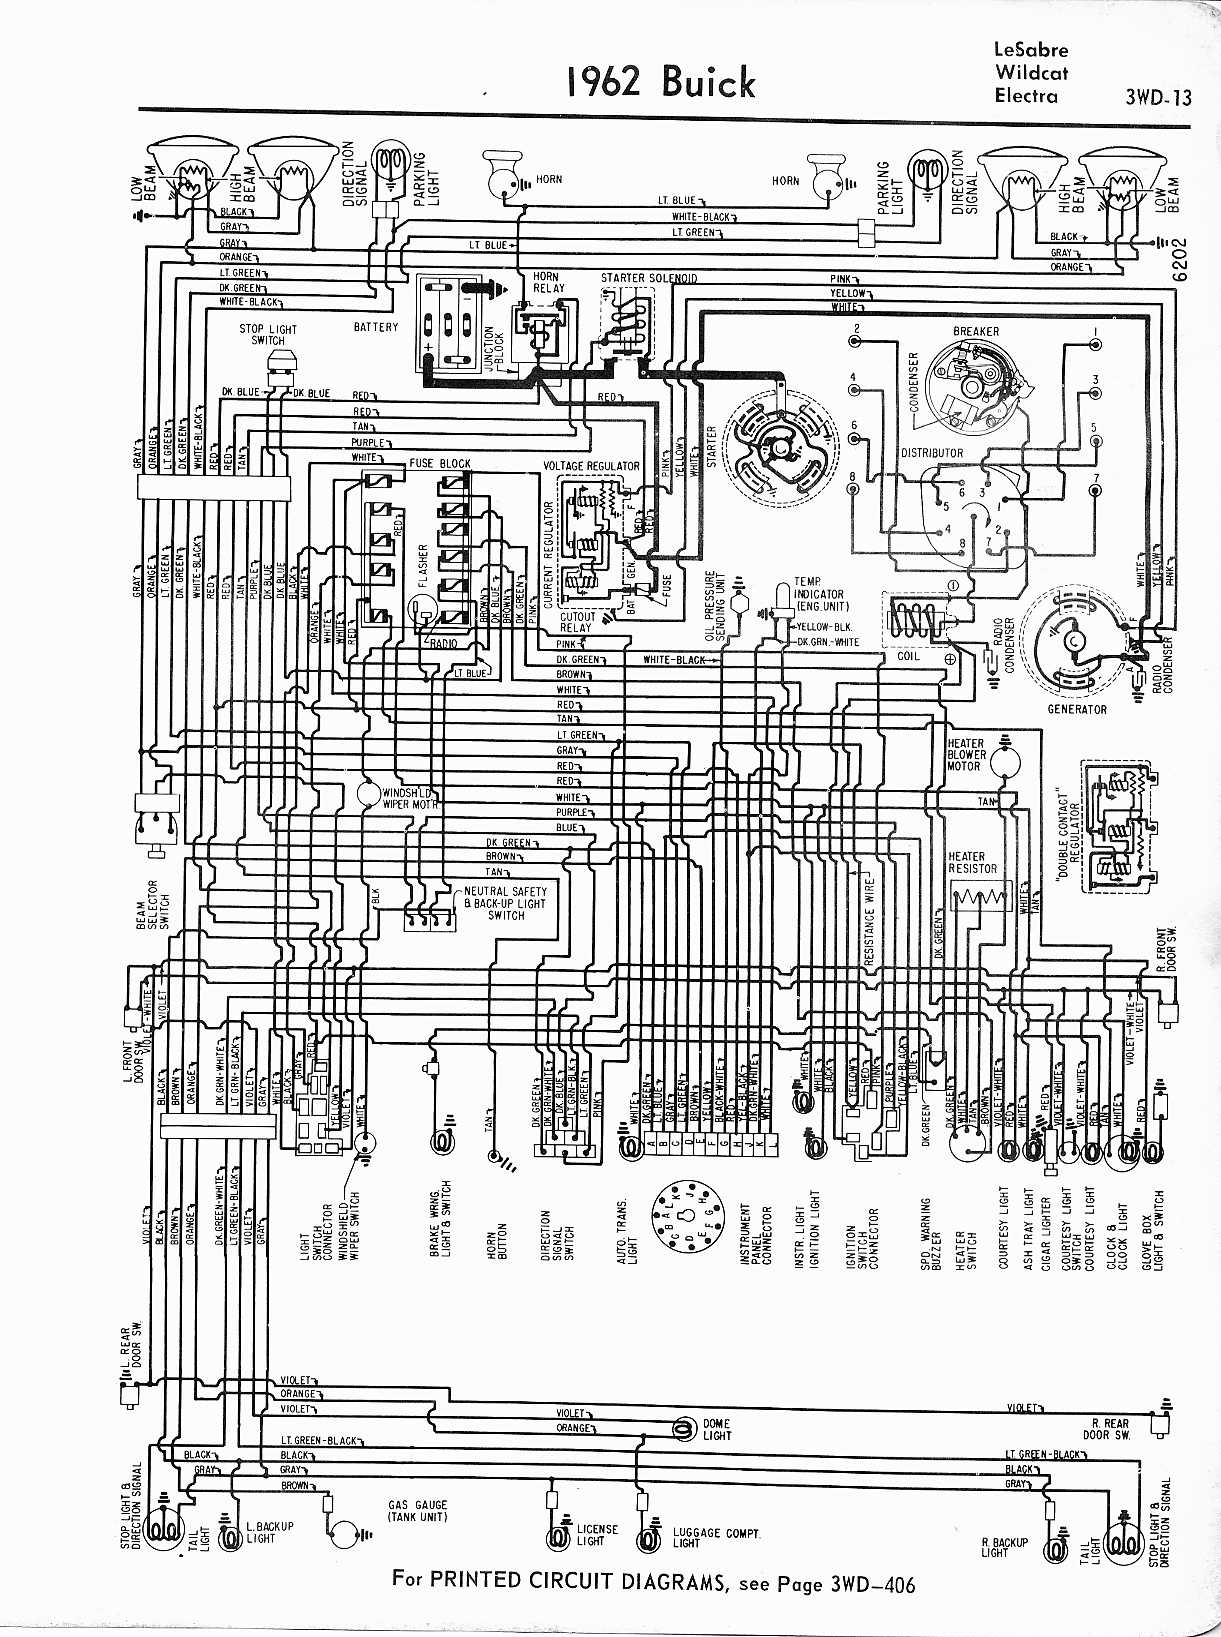 1991 Buick Roadmaster Wiring Diagram Wire Data Schema For 91 Celica Fuse Box 1996 Electrical Diagrams U2022 Rh Autonomia Co 1959